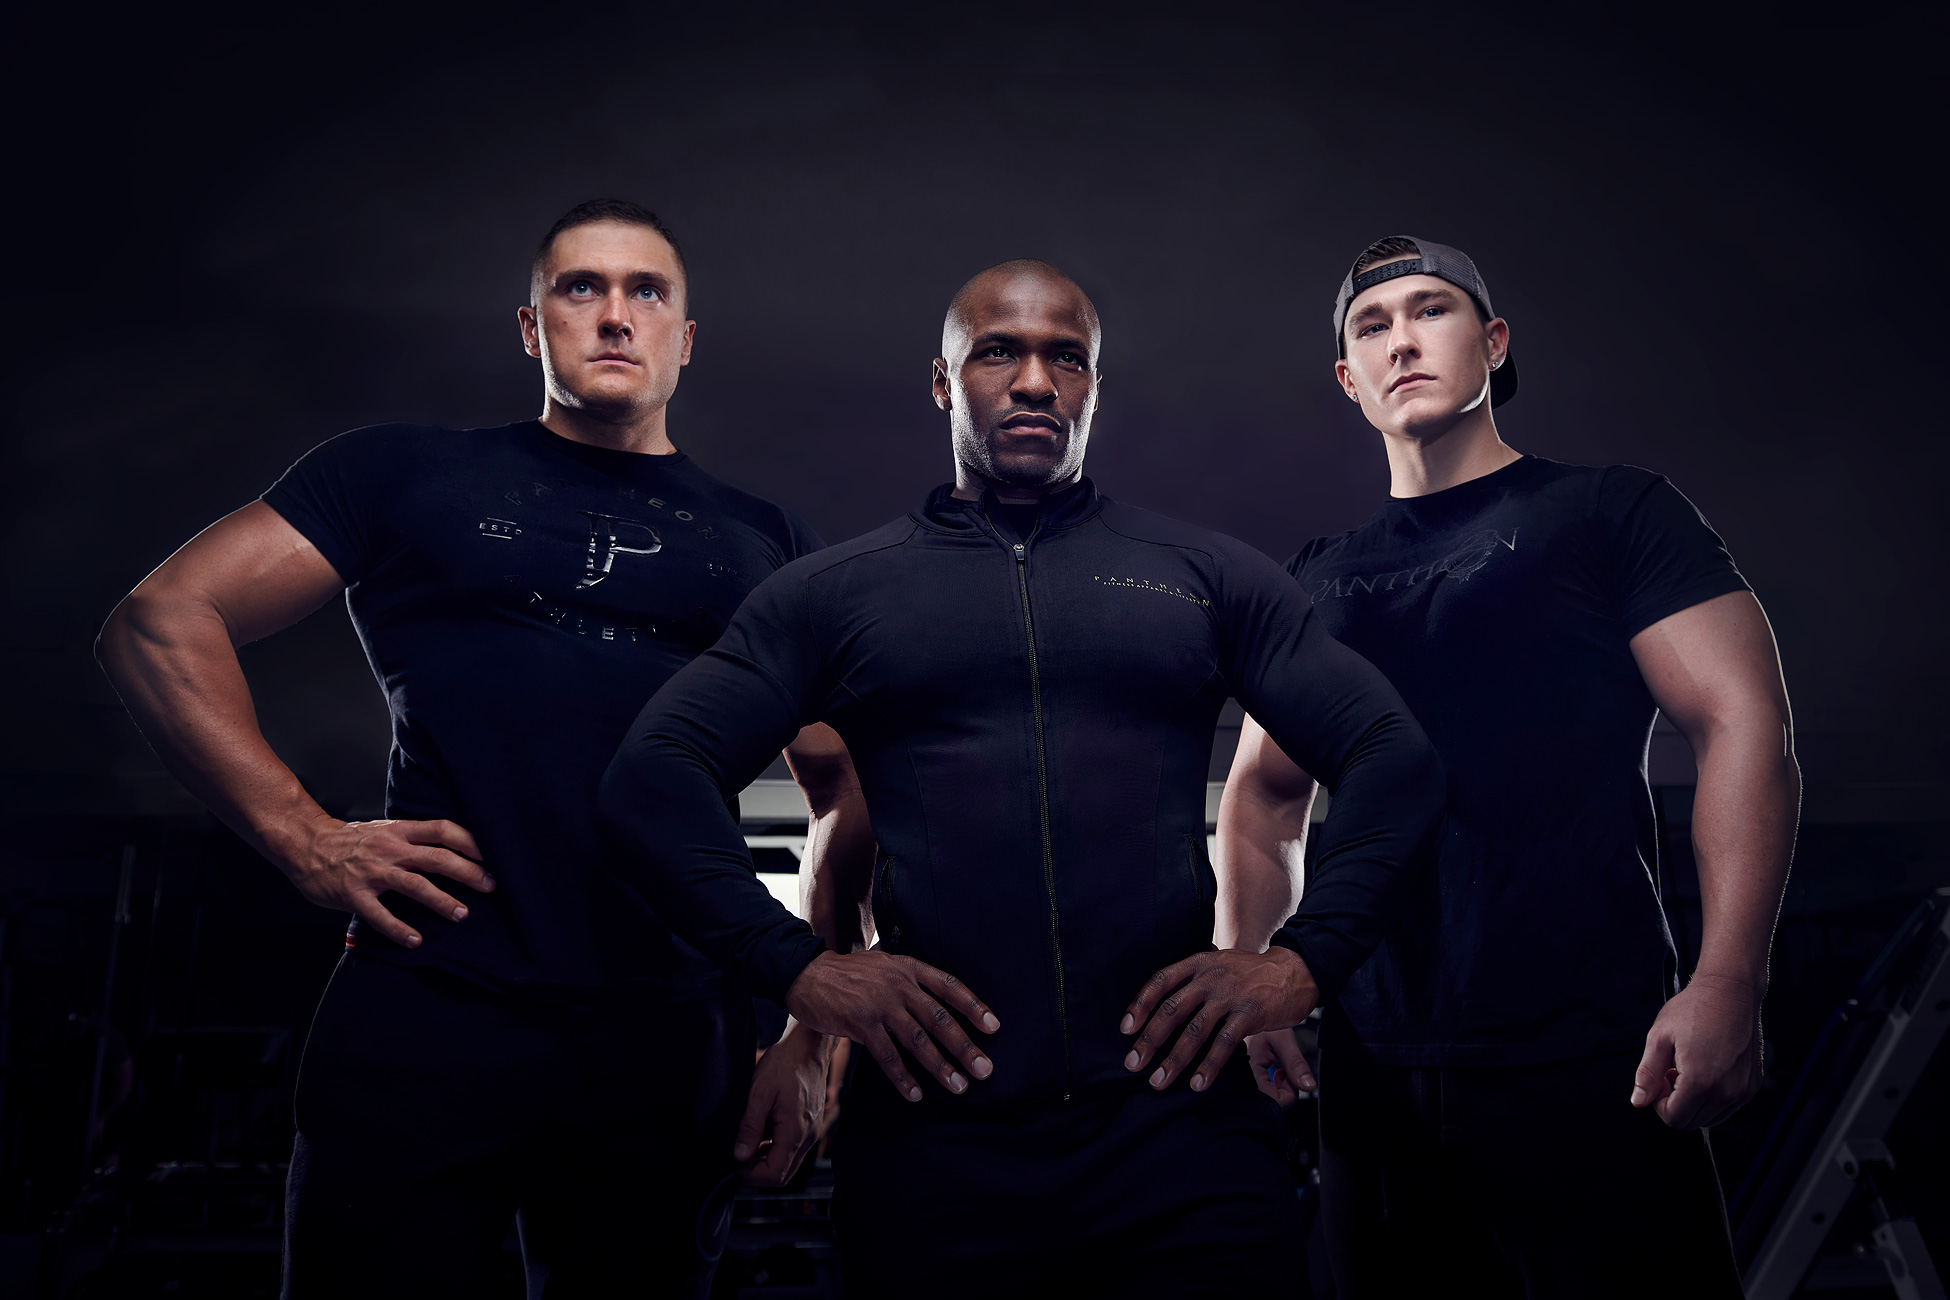 Group portrait of Pantheon Fitness models.